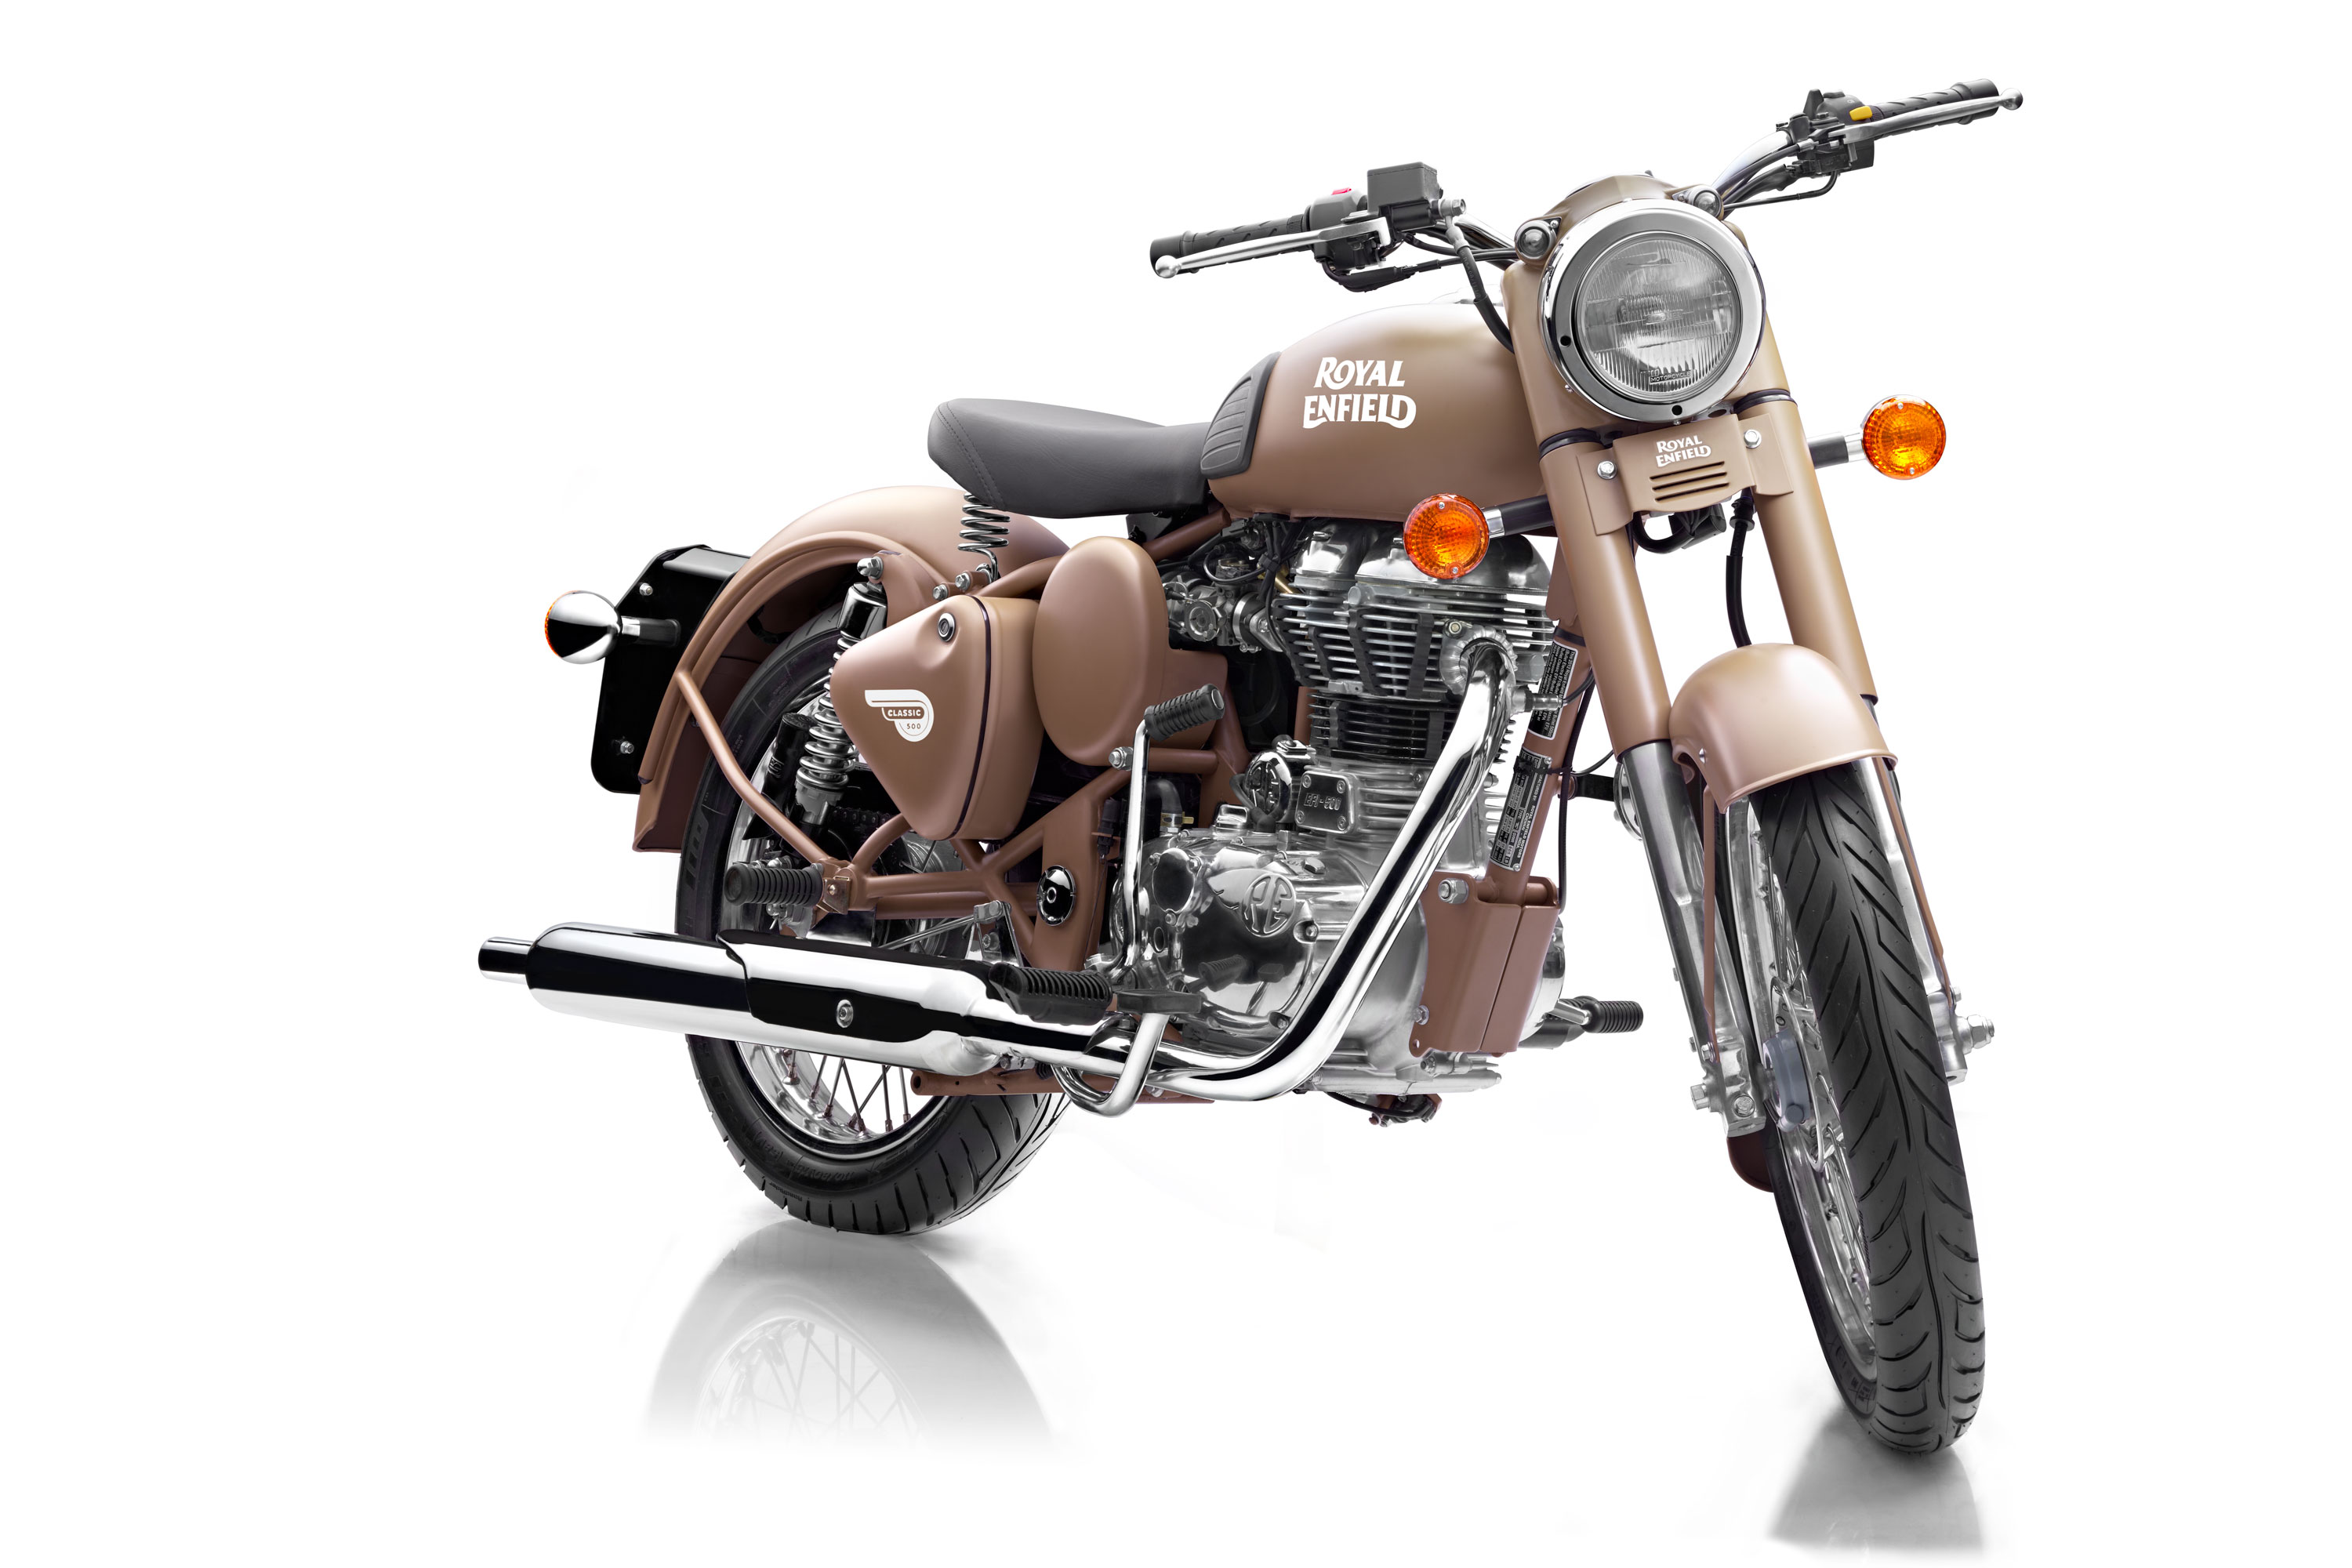 royalenfield_classic500_desertstorm_001